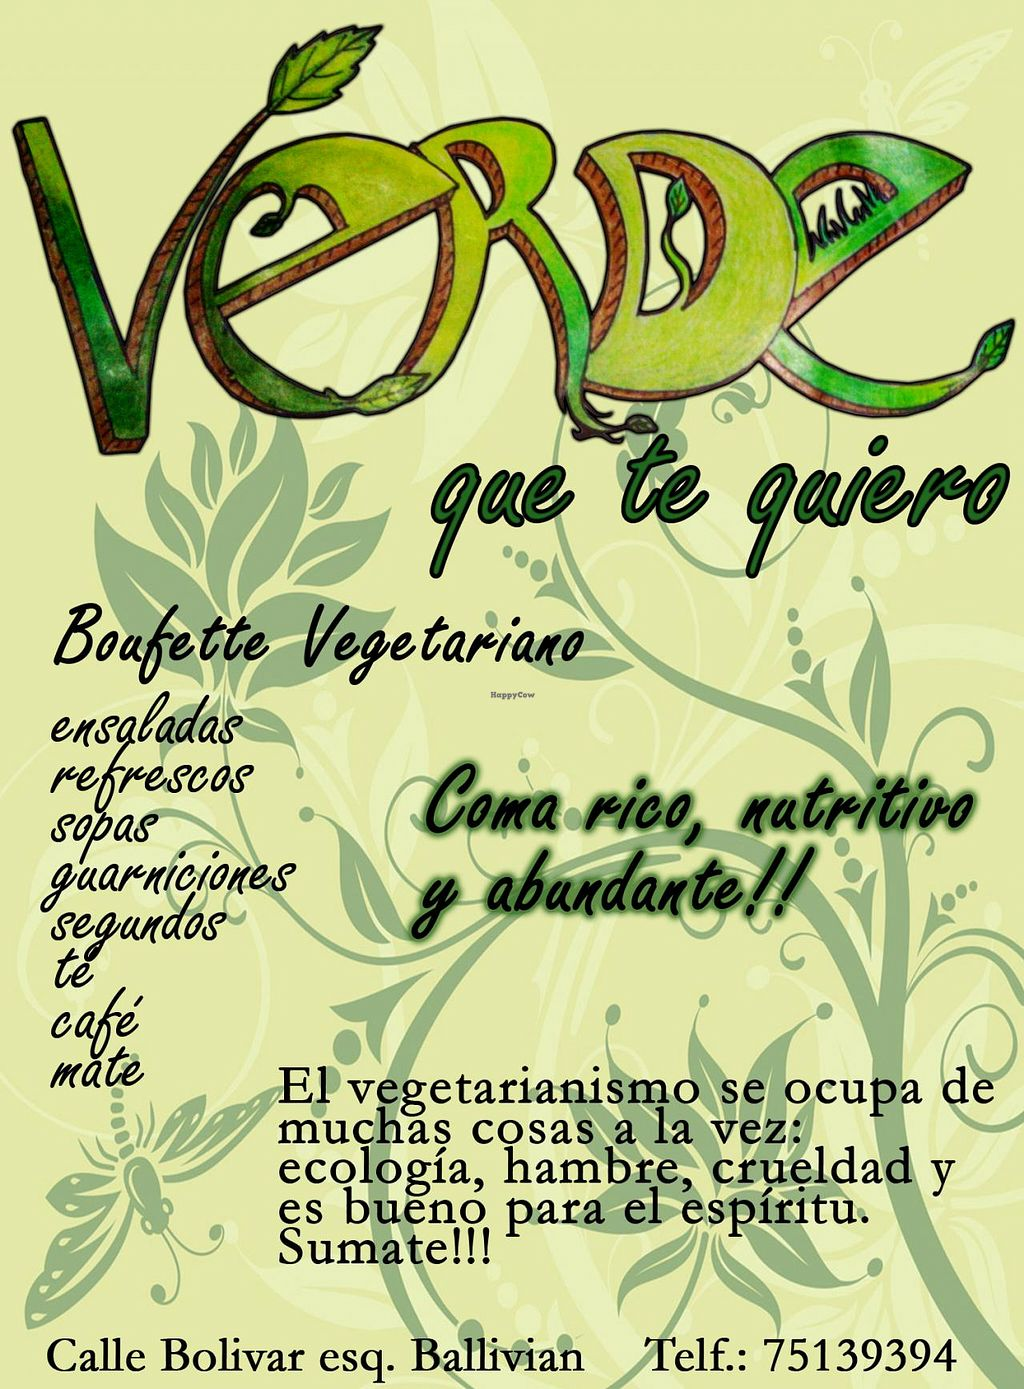 """Photo of Verde que te Quiero  by <a href=""""/members/profile/Fabs"""">Fabs</a> <br/>This is their logo.  <br/> July 16, 2015  - <a href='/contact/abuse/image/60657/109549'>Report</a>"""